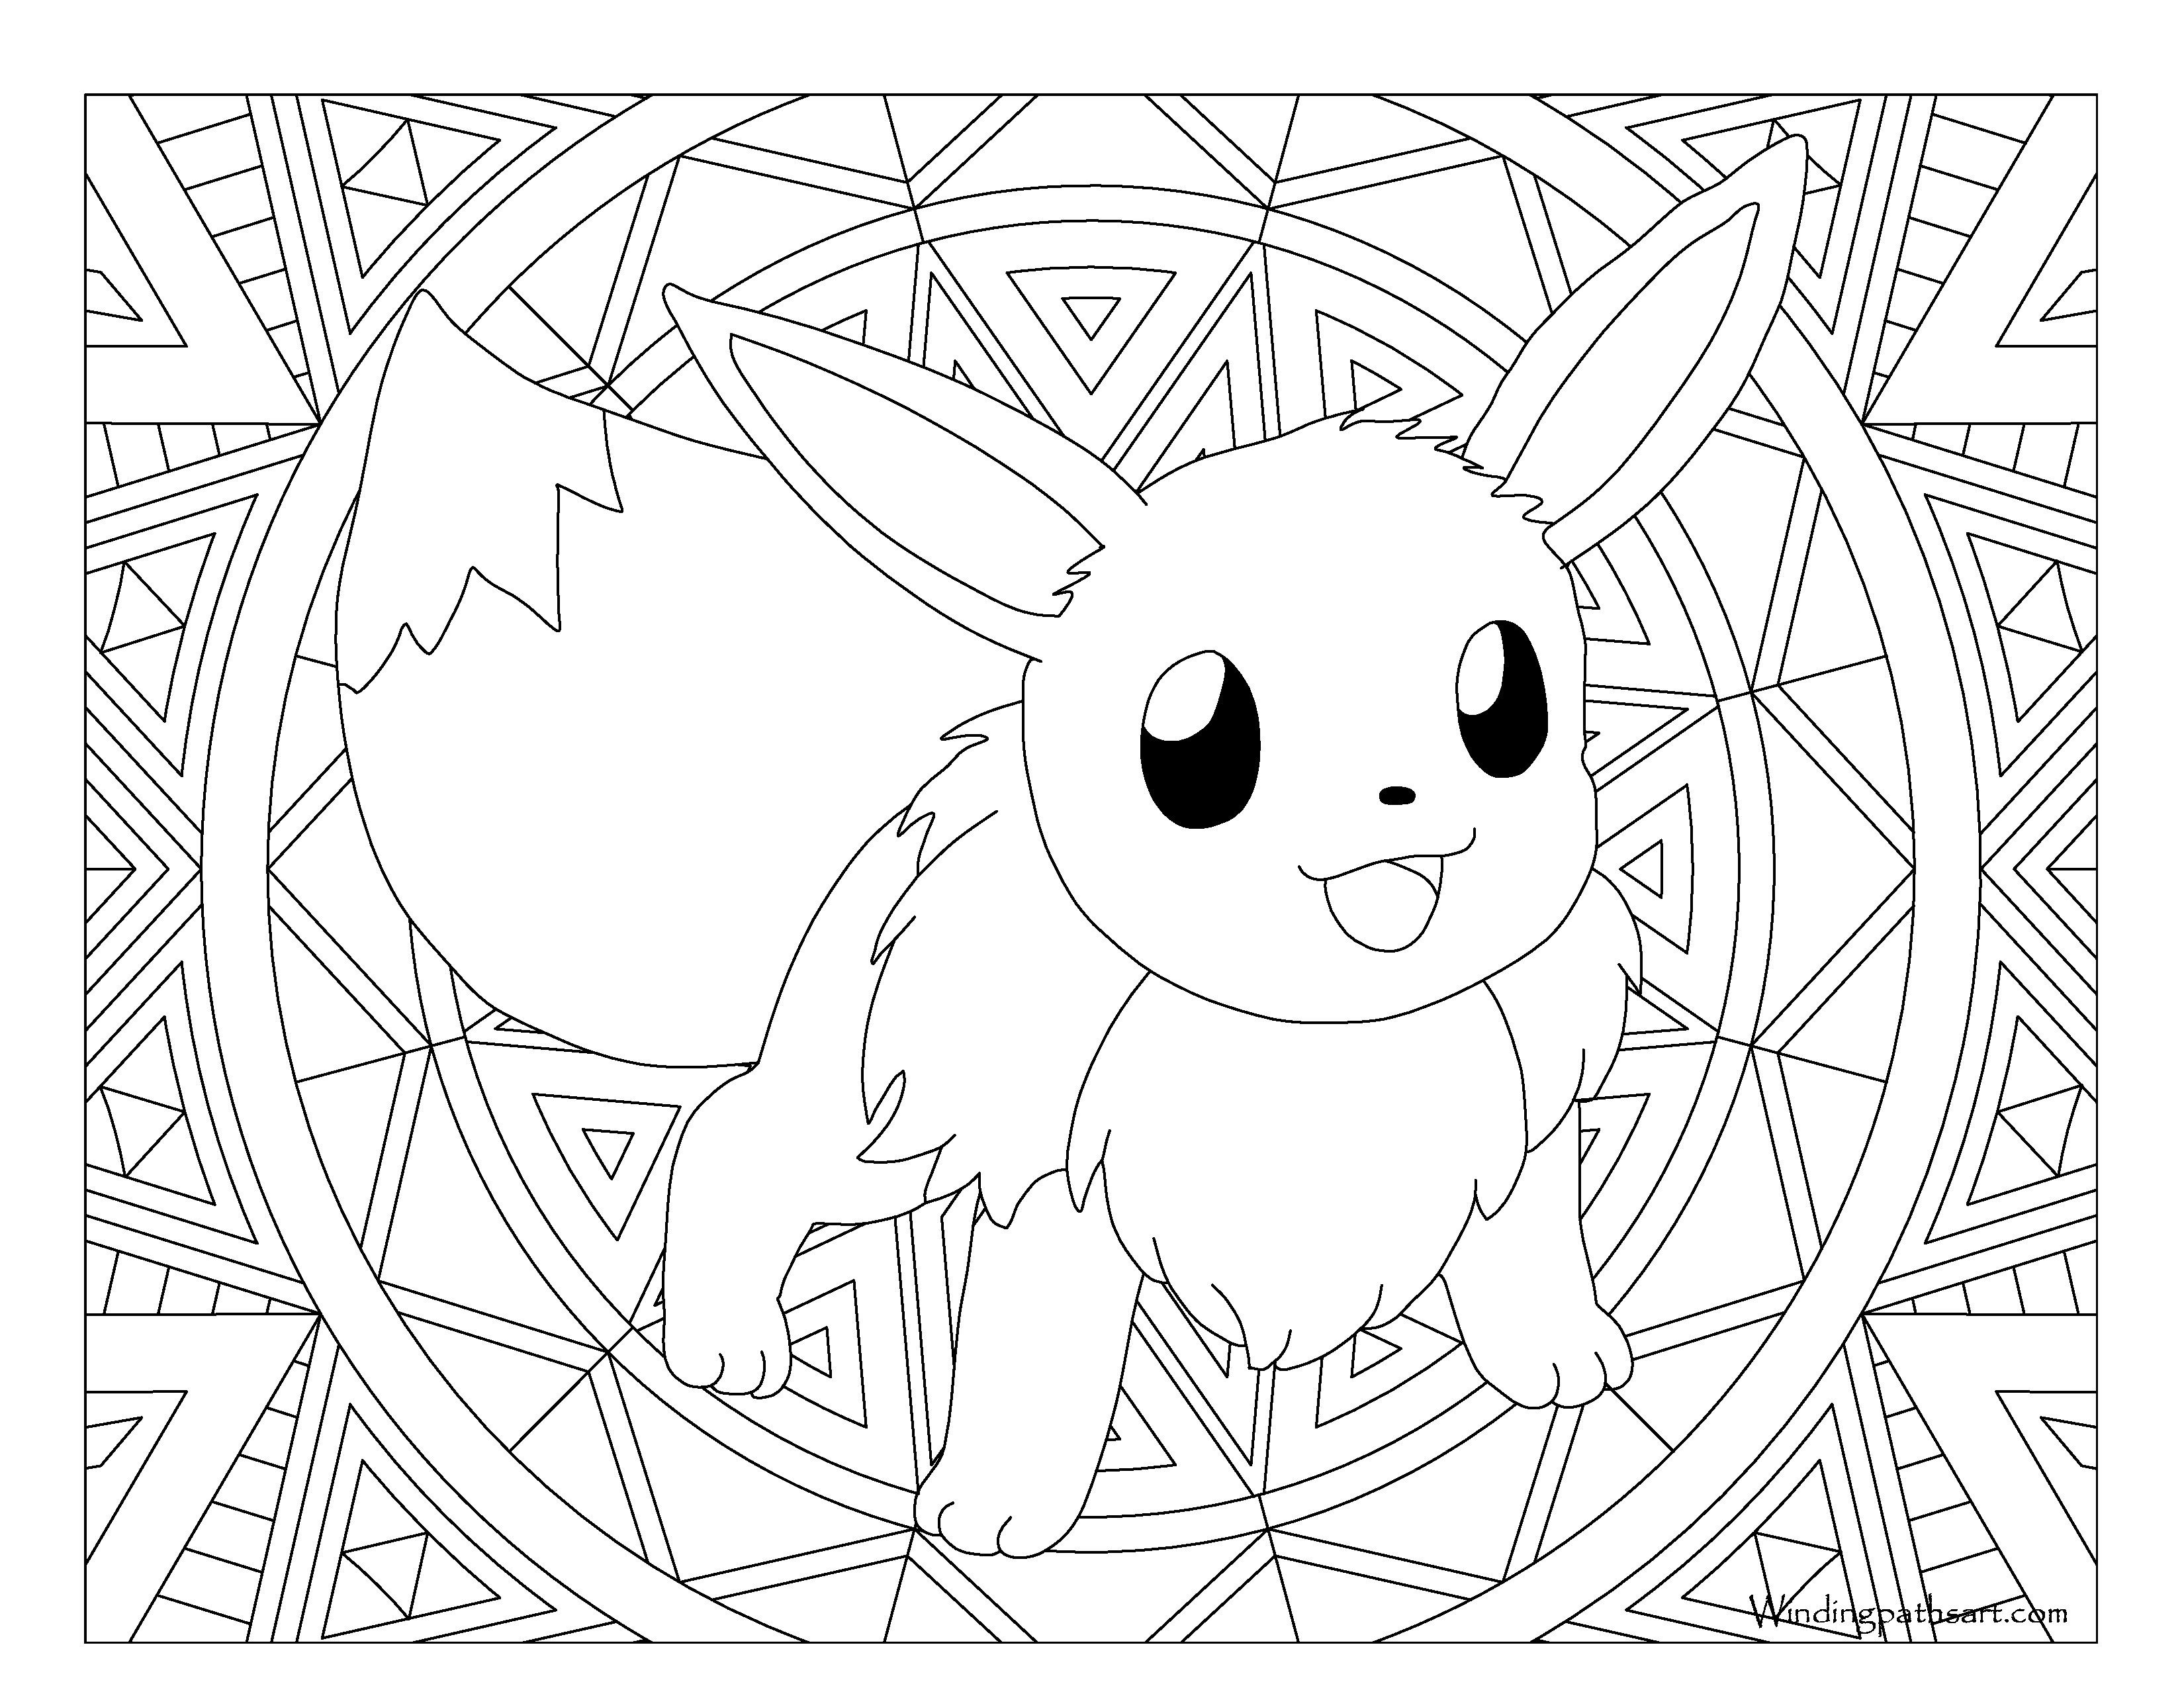 Elegant Image of Eevee Evolutions Coloring Pages | Stained ...